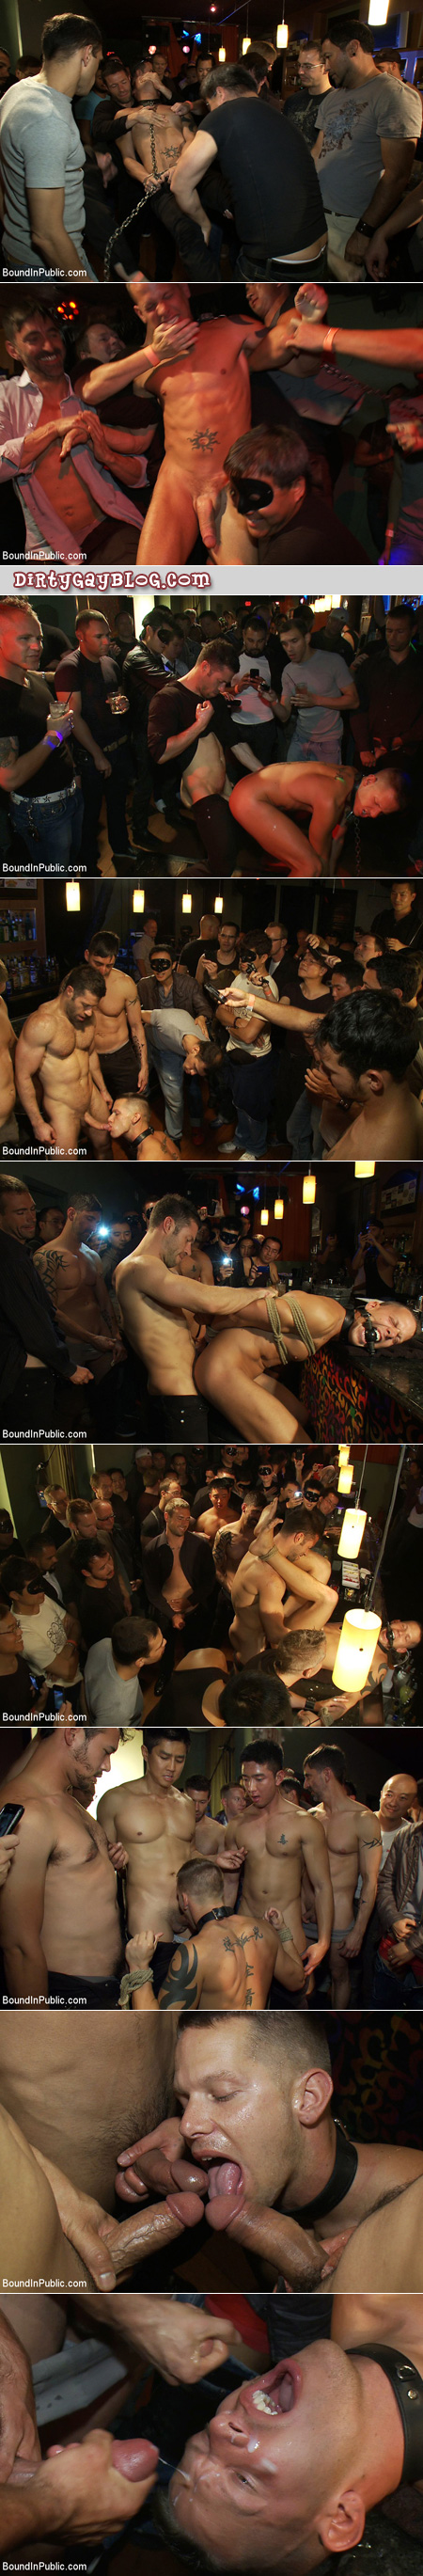 Shane Frost gets used and pissed on at Club Dragon.